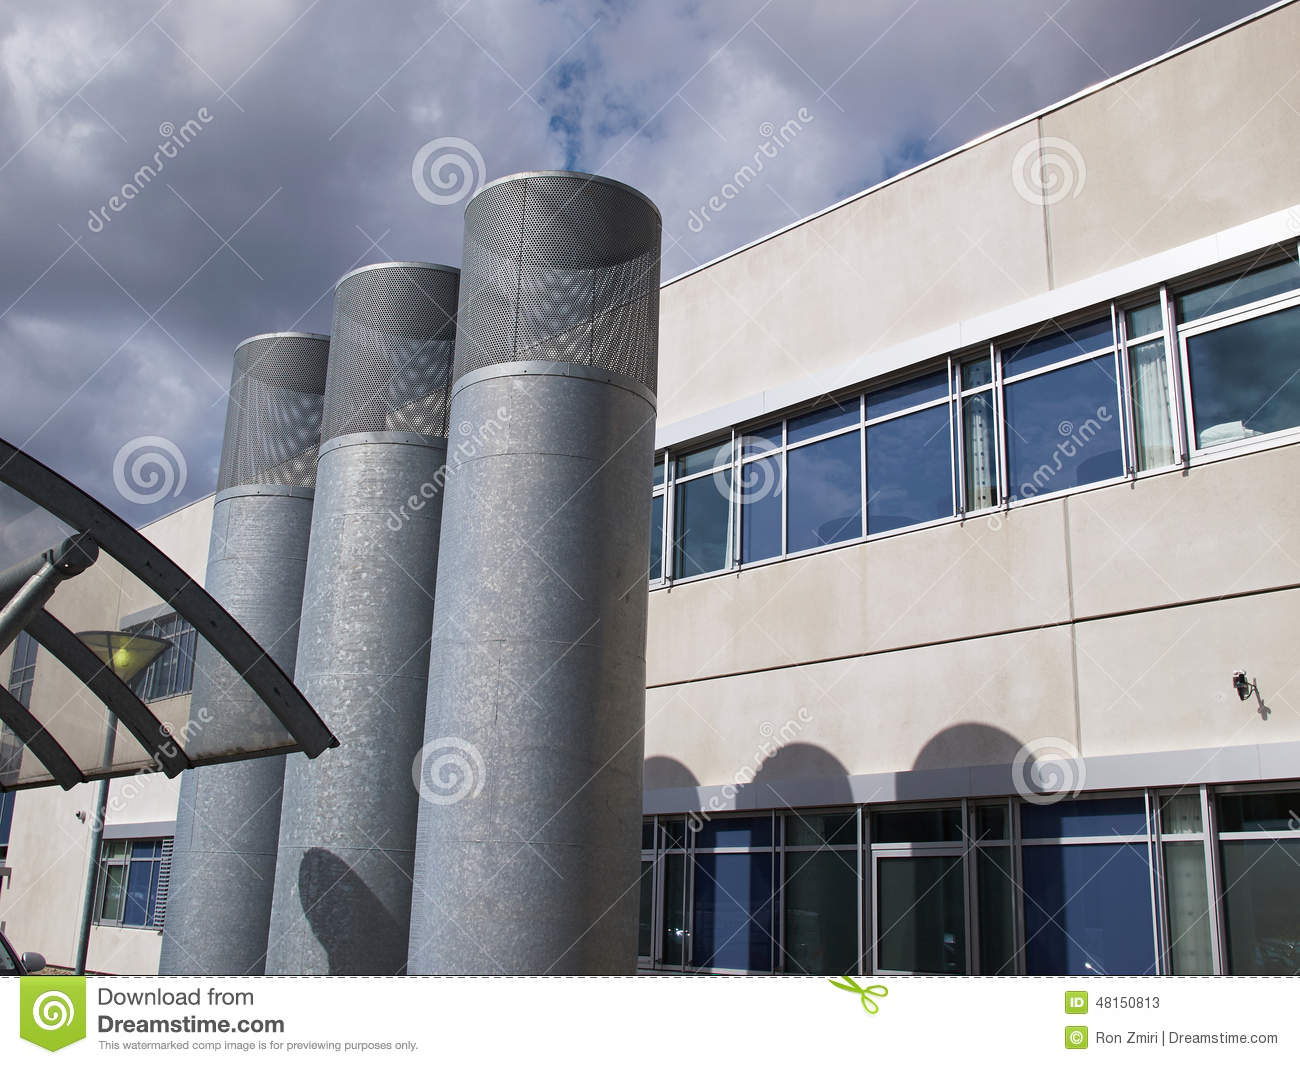 Industrial Building Ventiltors : Ventilation pipes of industrial building stock photo